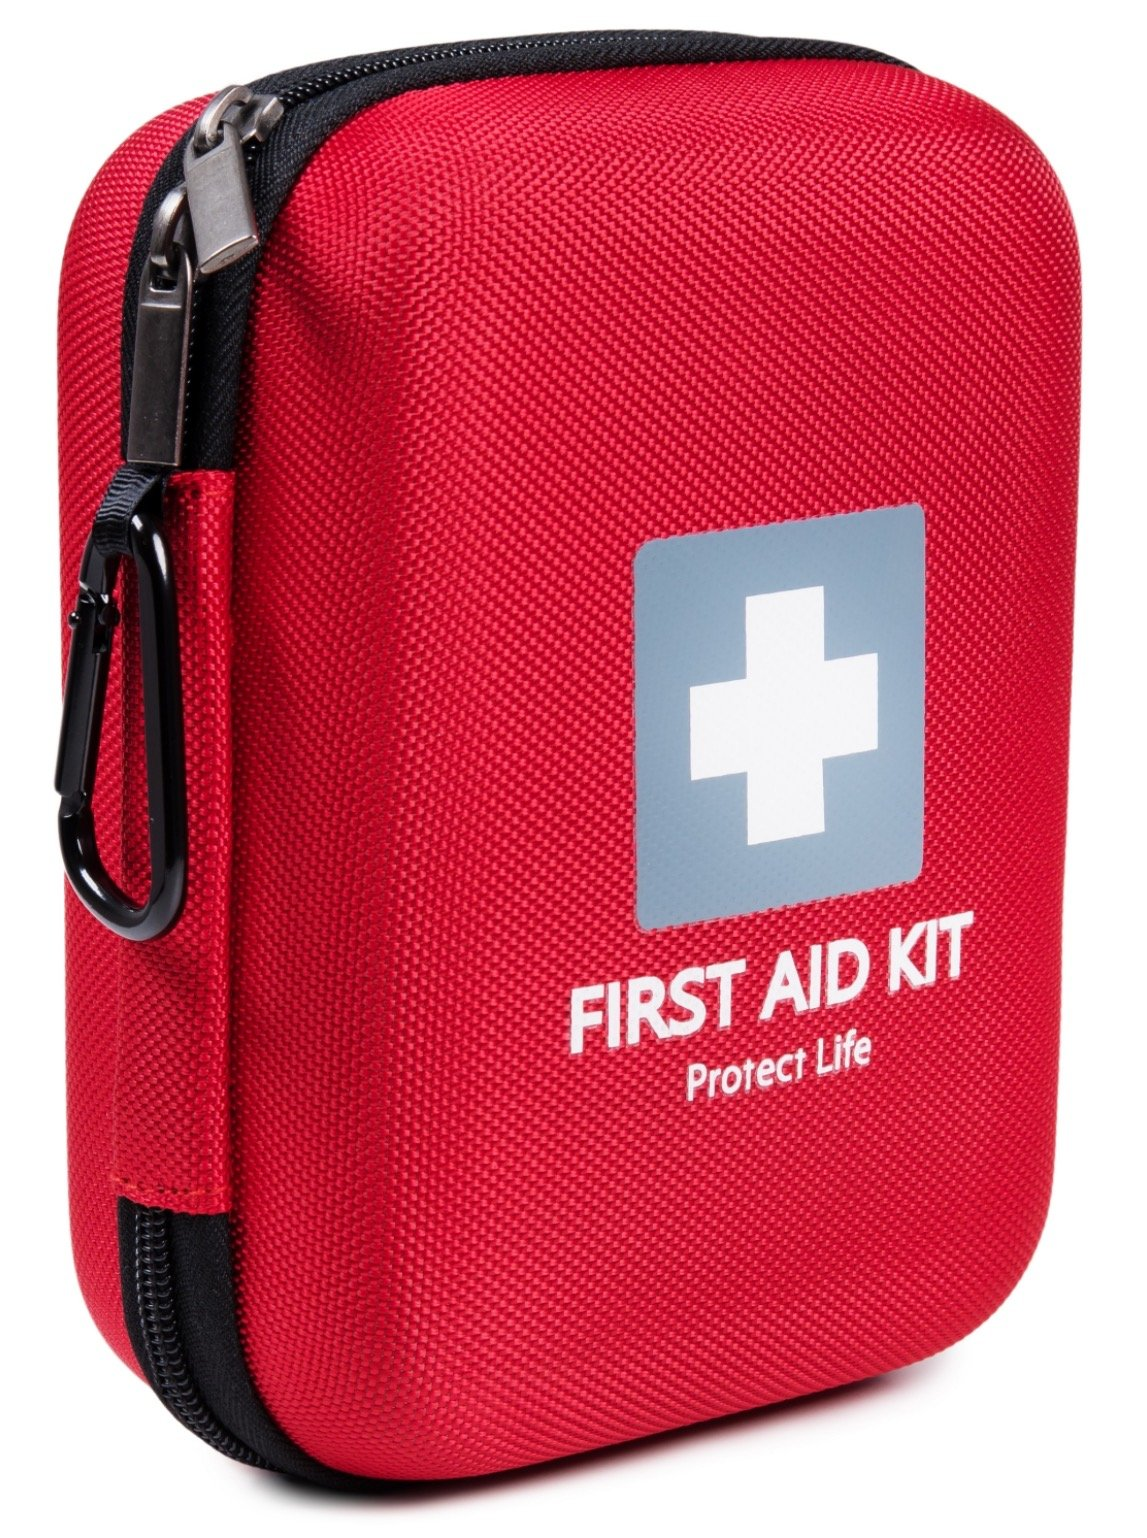 First Aid Kit - 150 Piece - for Car, Home, Travel, Sports, Camping, Hiking or Office | Red case w/Reflective Cross Fully Packed with Emergency Supplies